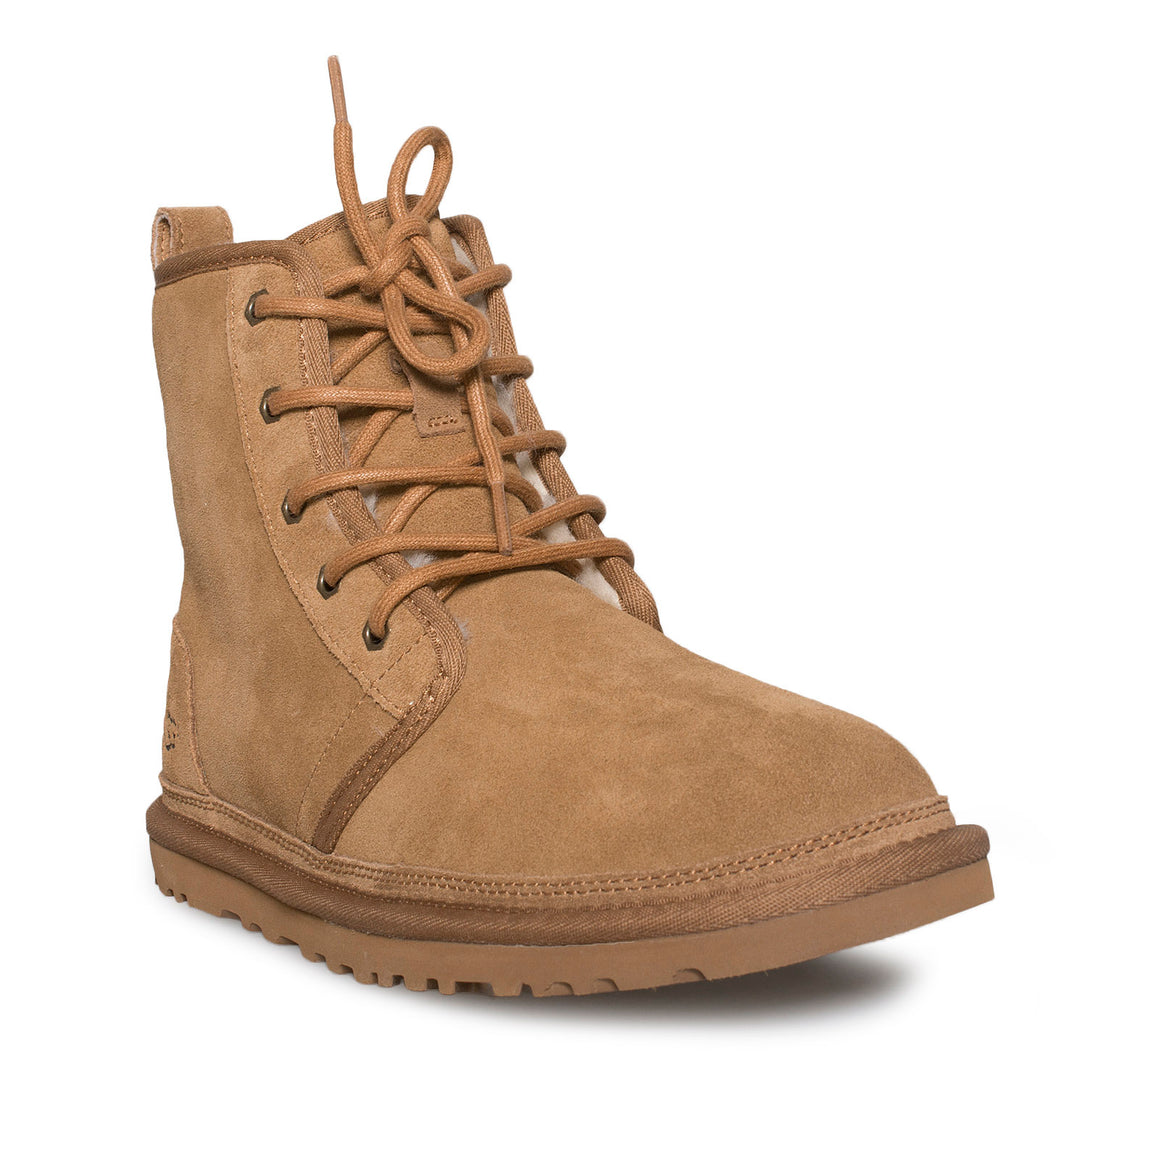 UGG Harkley Chestnut Boots